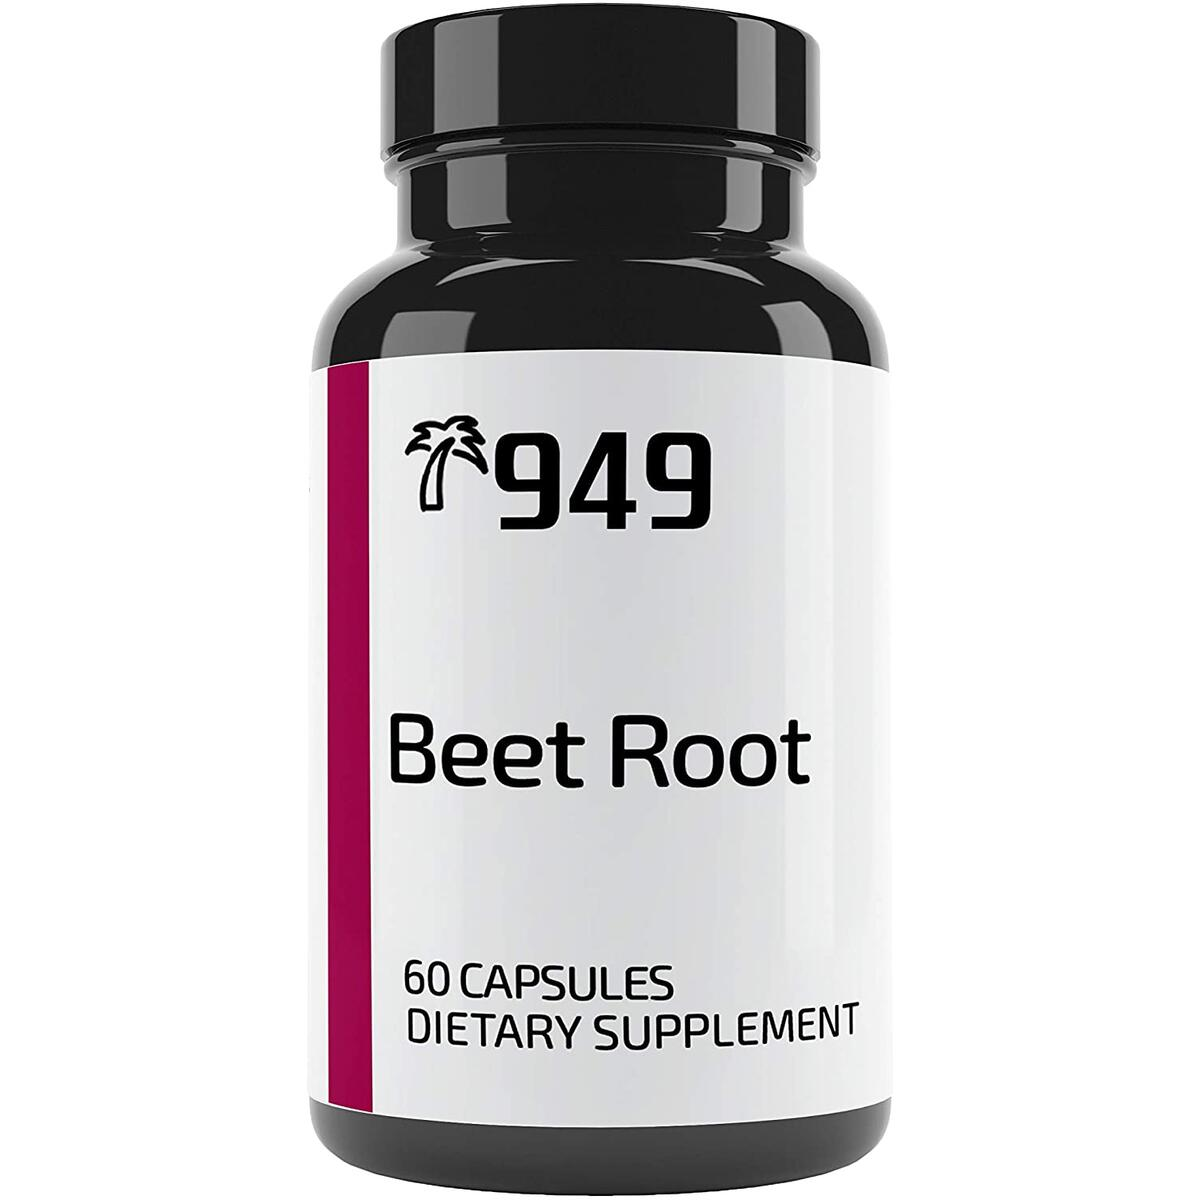 Beet Root Capsules, Under 10 Dollars, 60 Caps, Energy, Cardiovascular Health, No Additive or Filler, Lab-Tested, Made in USA, Satisfaction Guaranteed, 949*